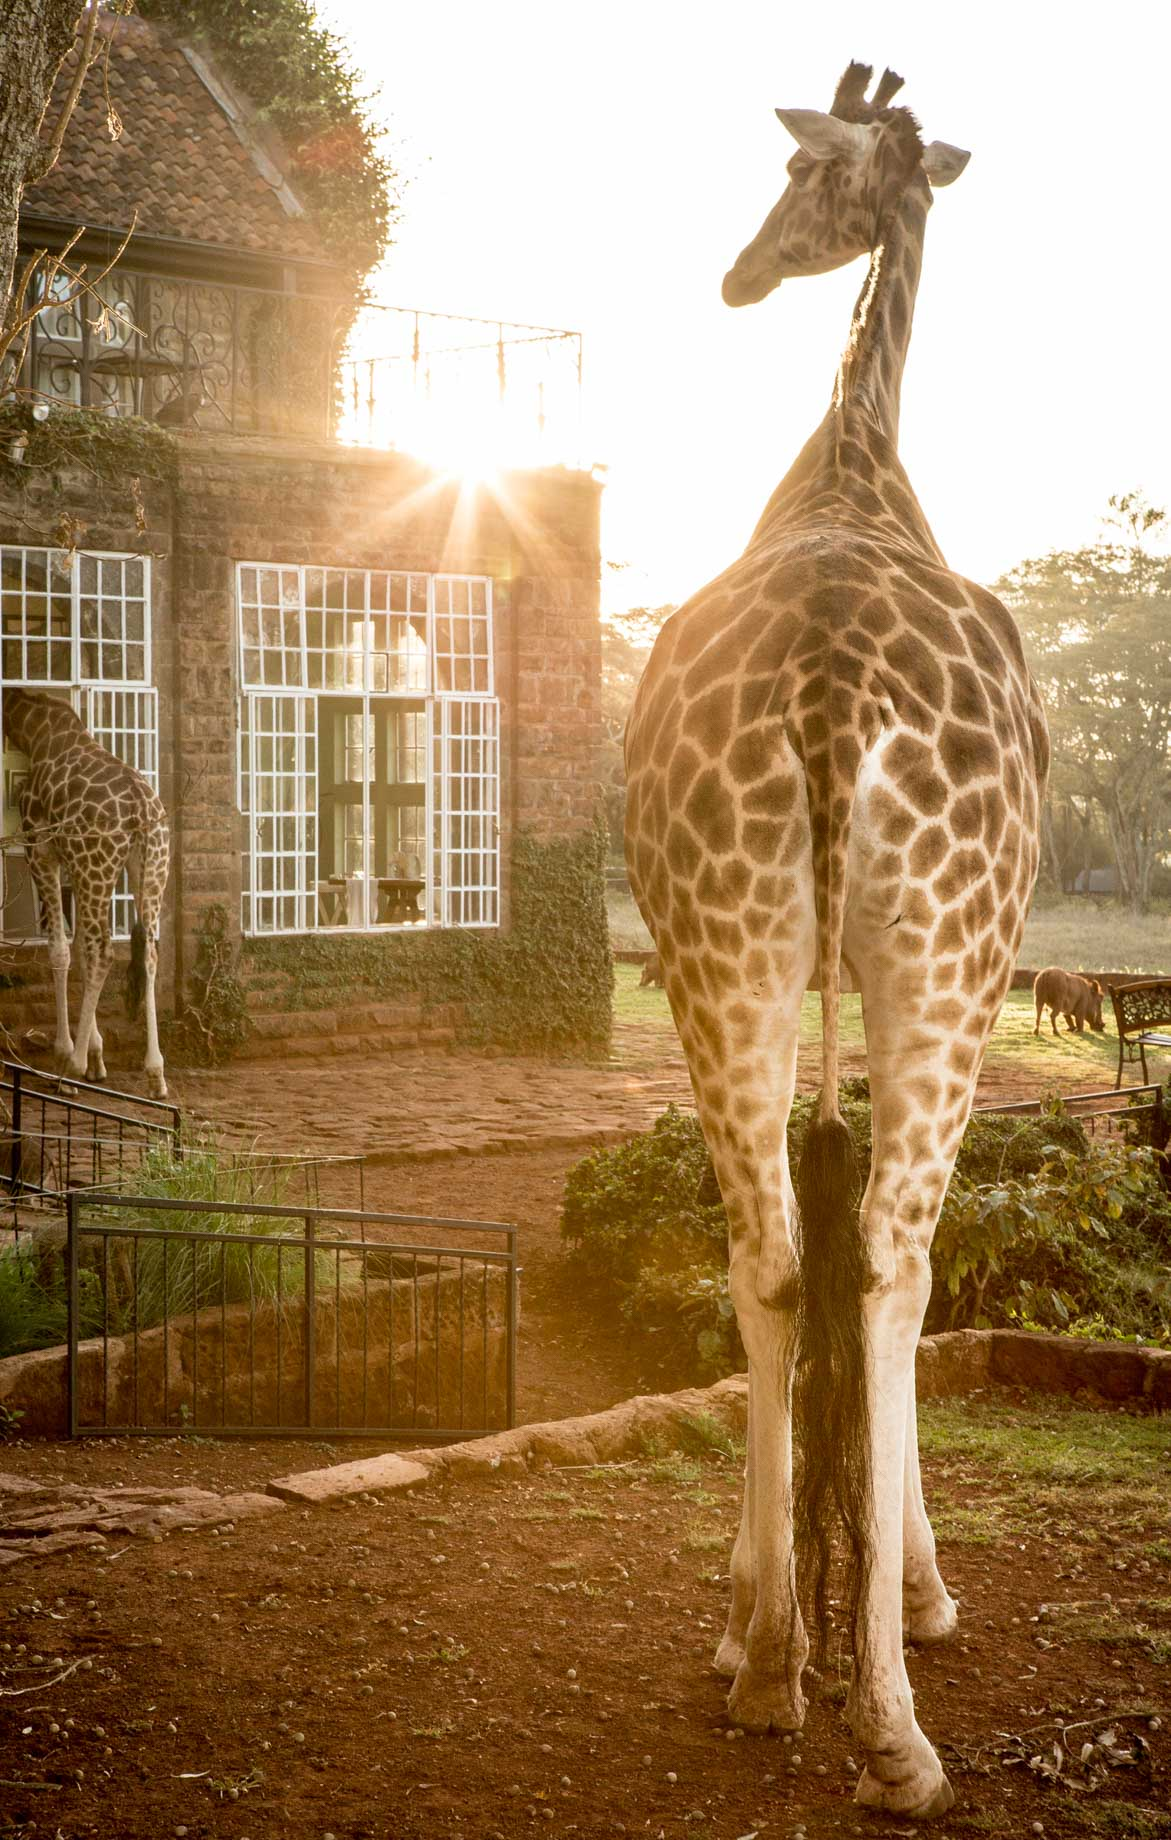 Staying at Giraffe Manor really worth the cost